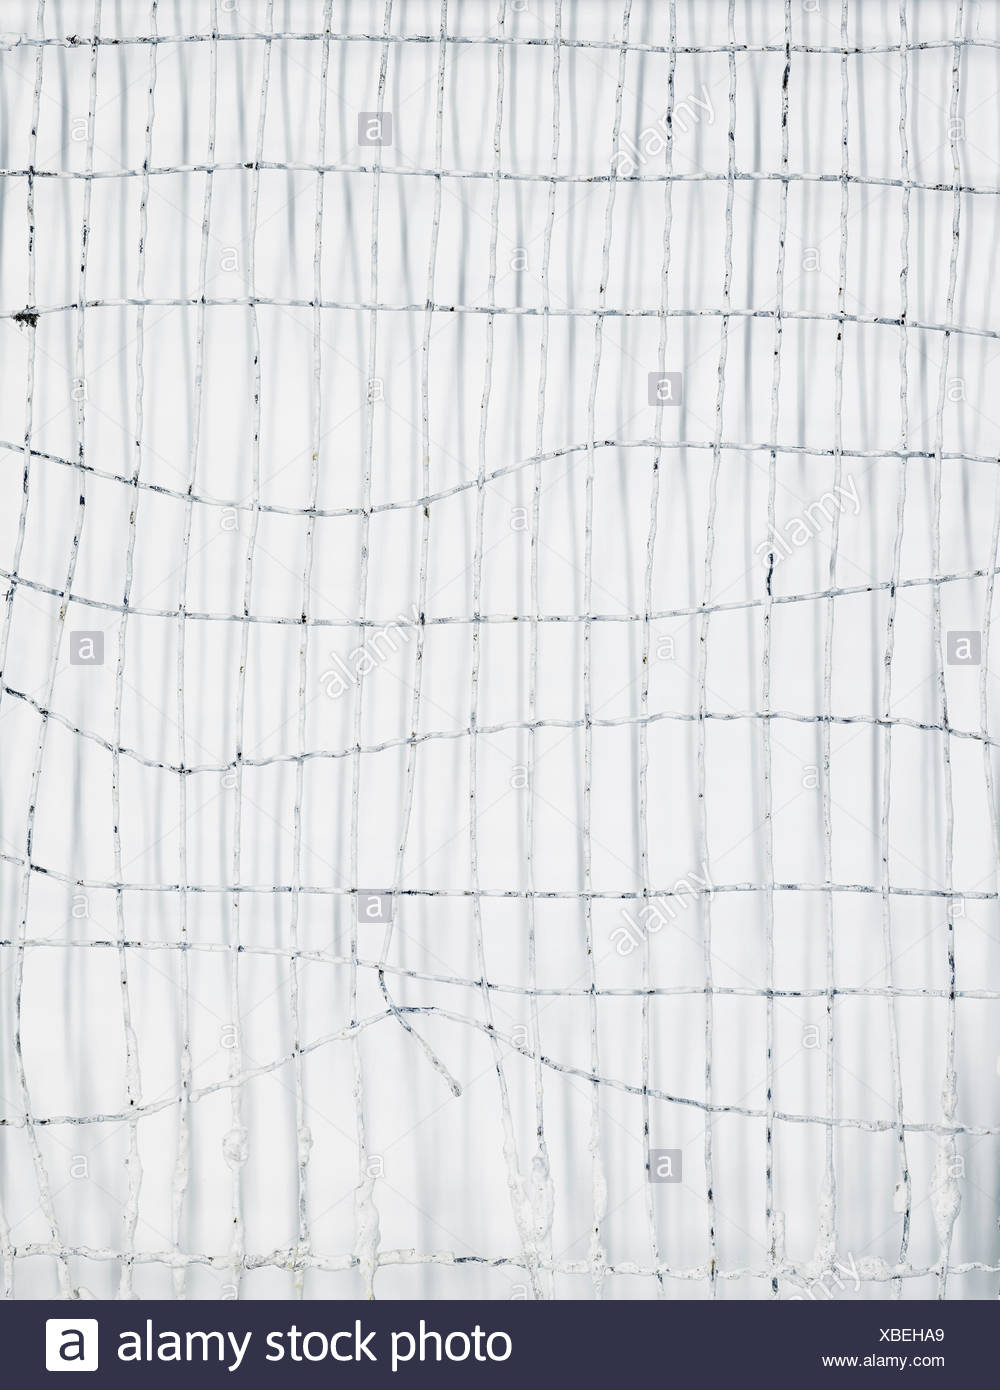 Grid made of metal wire, twisted, seen from above - Stock Image